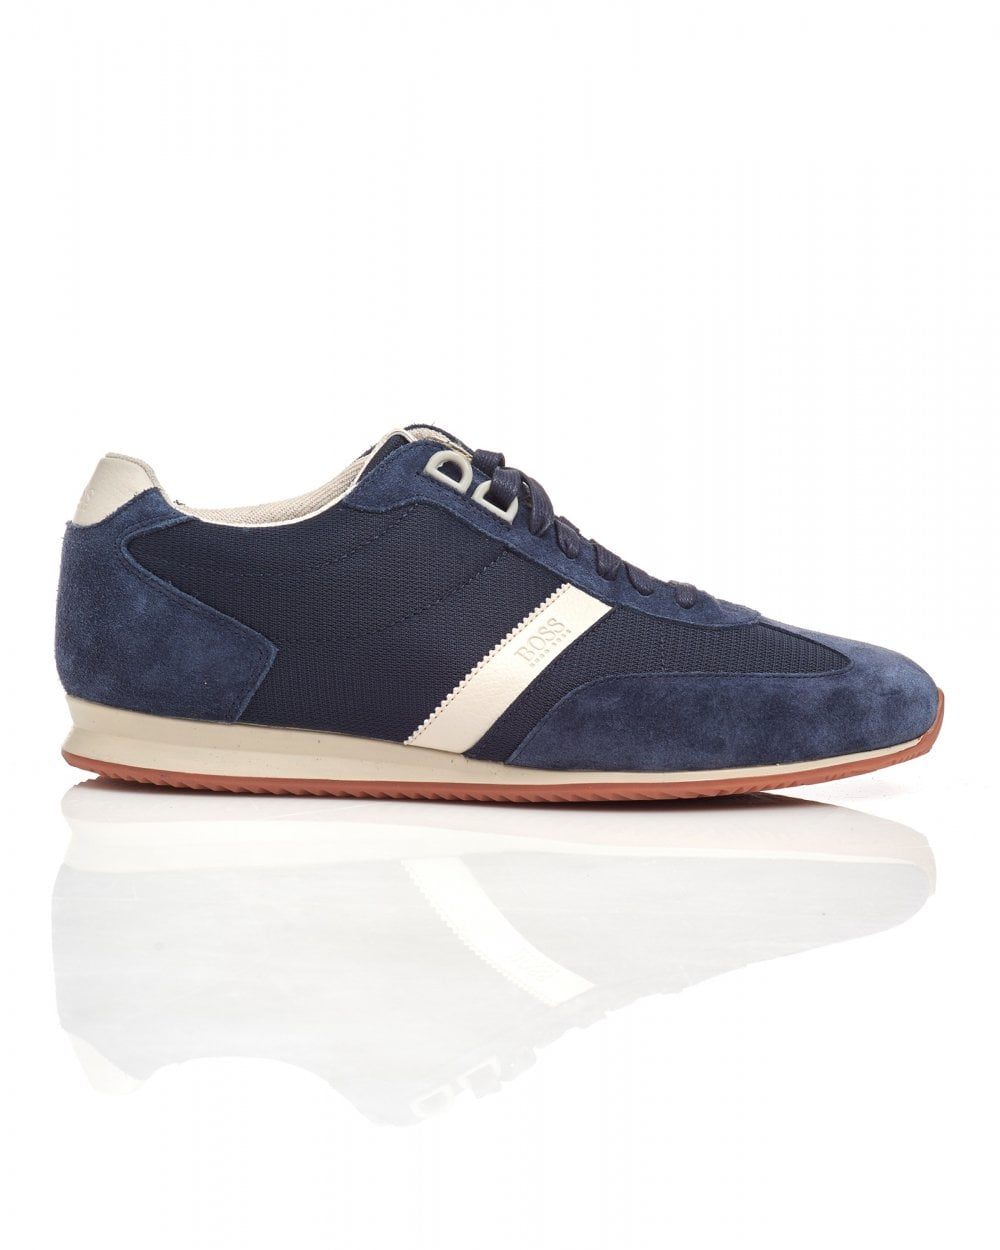 BOSS Casual Mens Orland Lowp sdny1 Suede Leather Navy Blue Trainers 90630c6cfd5